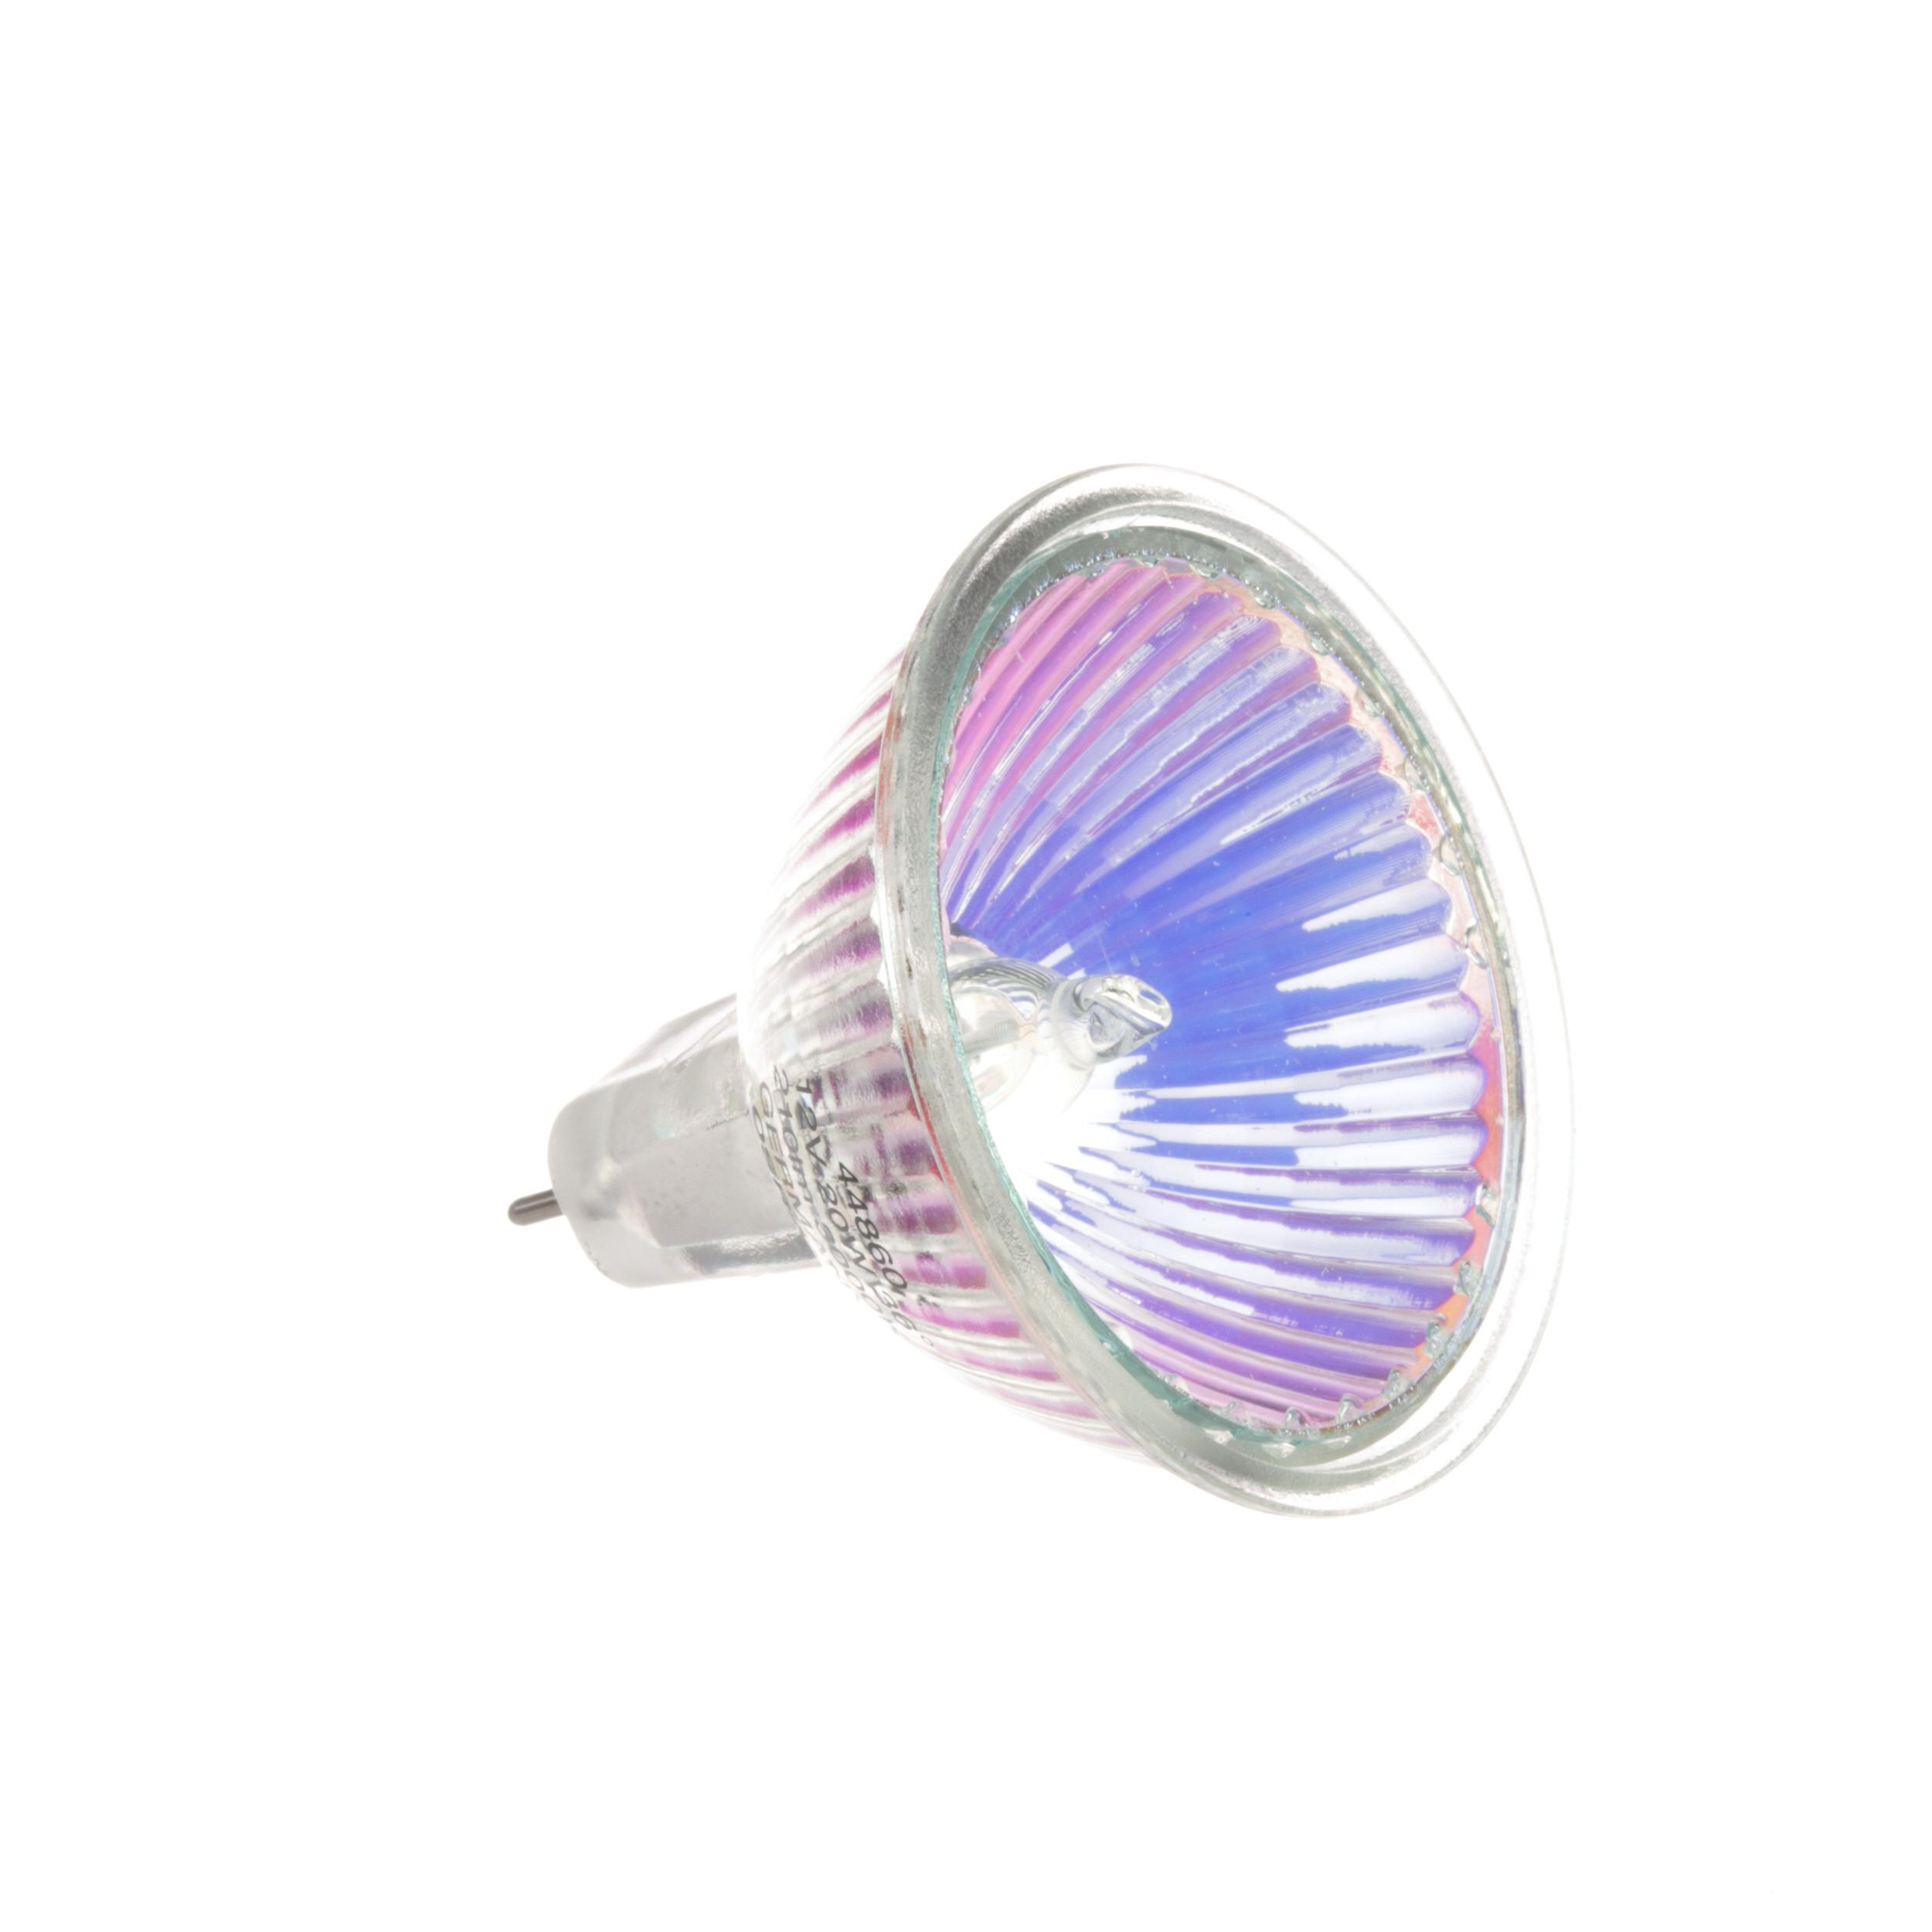 Doyon Light Bulb Part Mer011